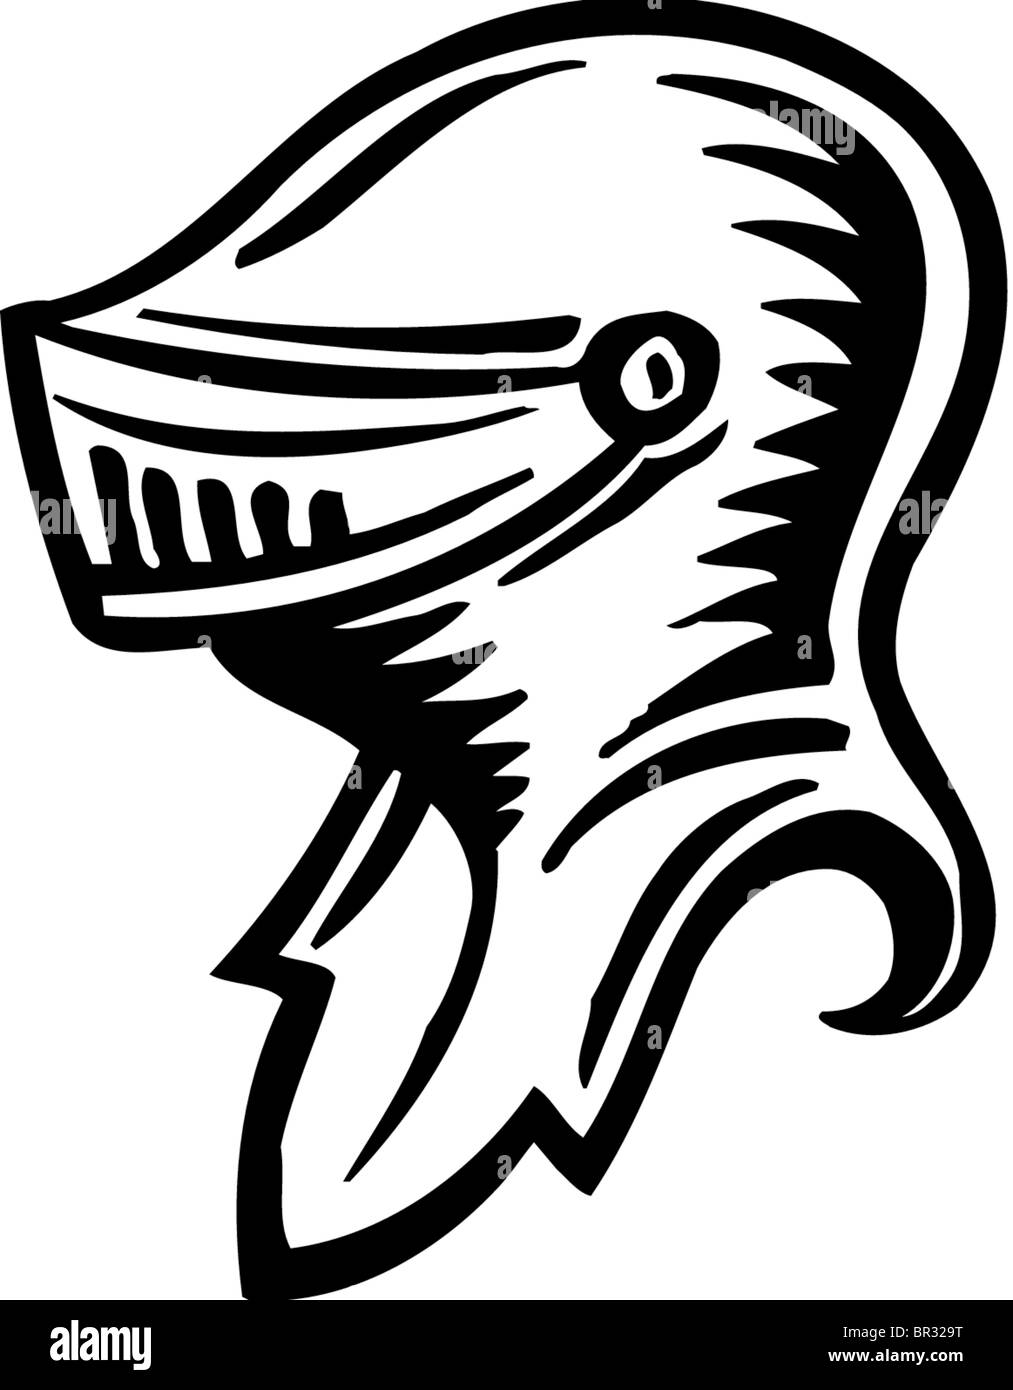 A picture of a knights helmet in black and white - Stock Image